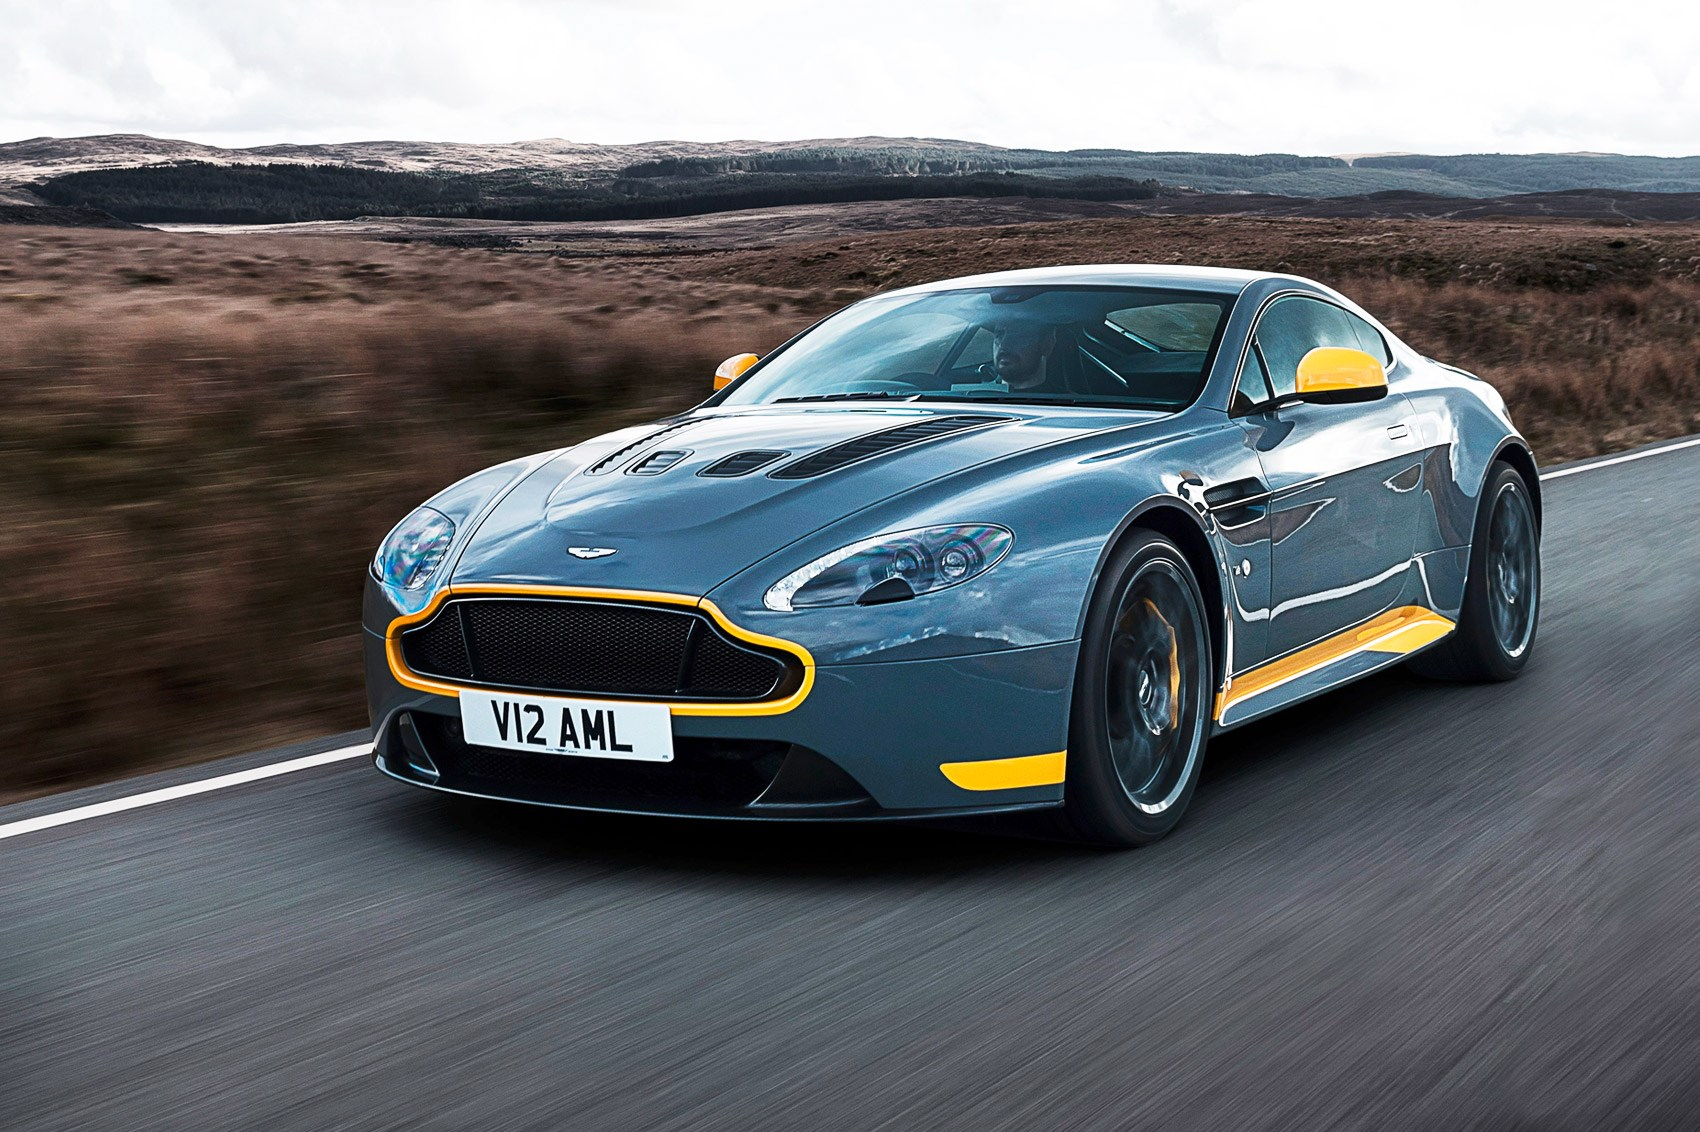 aston martin v12 vantage s manual first drive, car+ june 2016